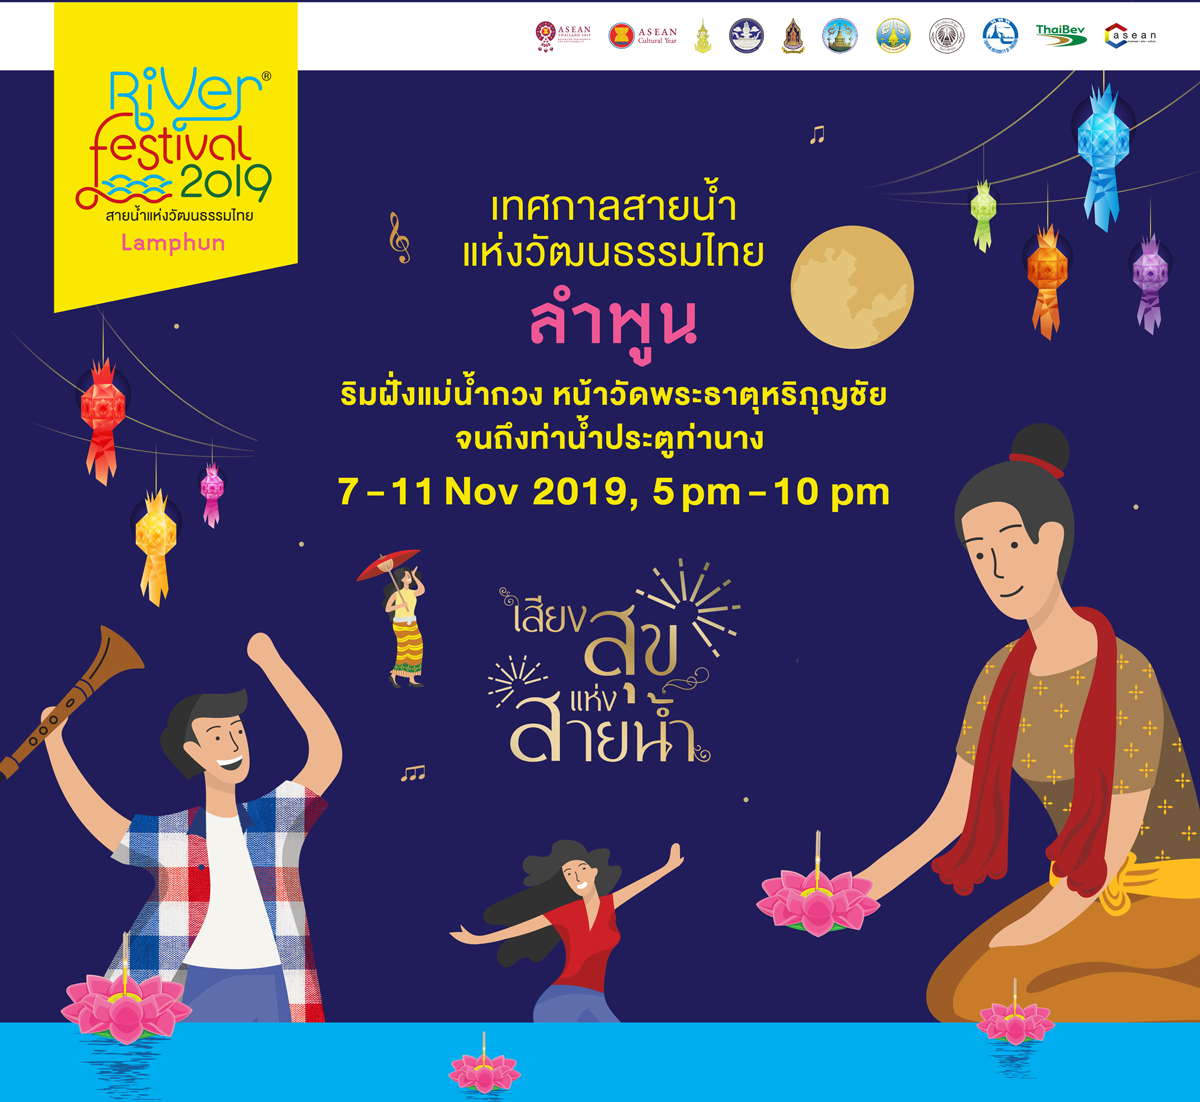 The River Festival Lamphun